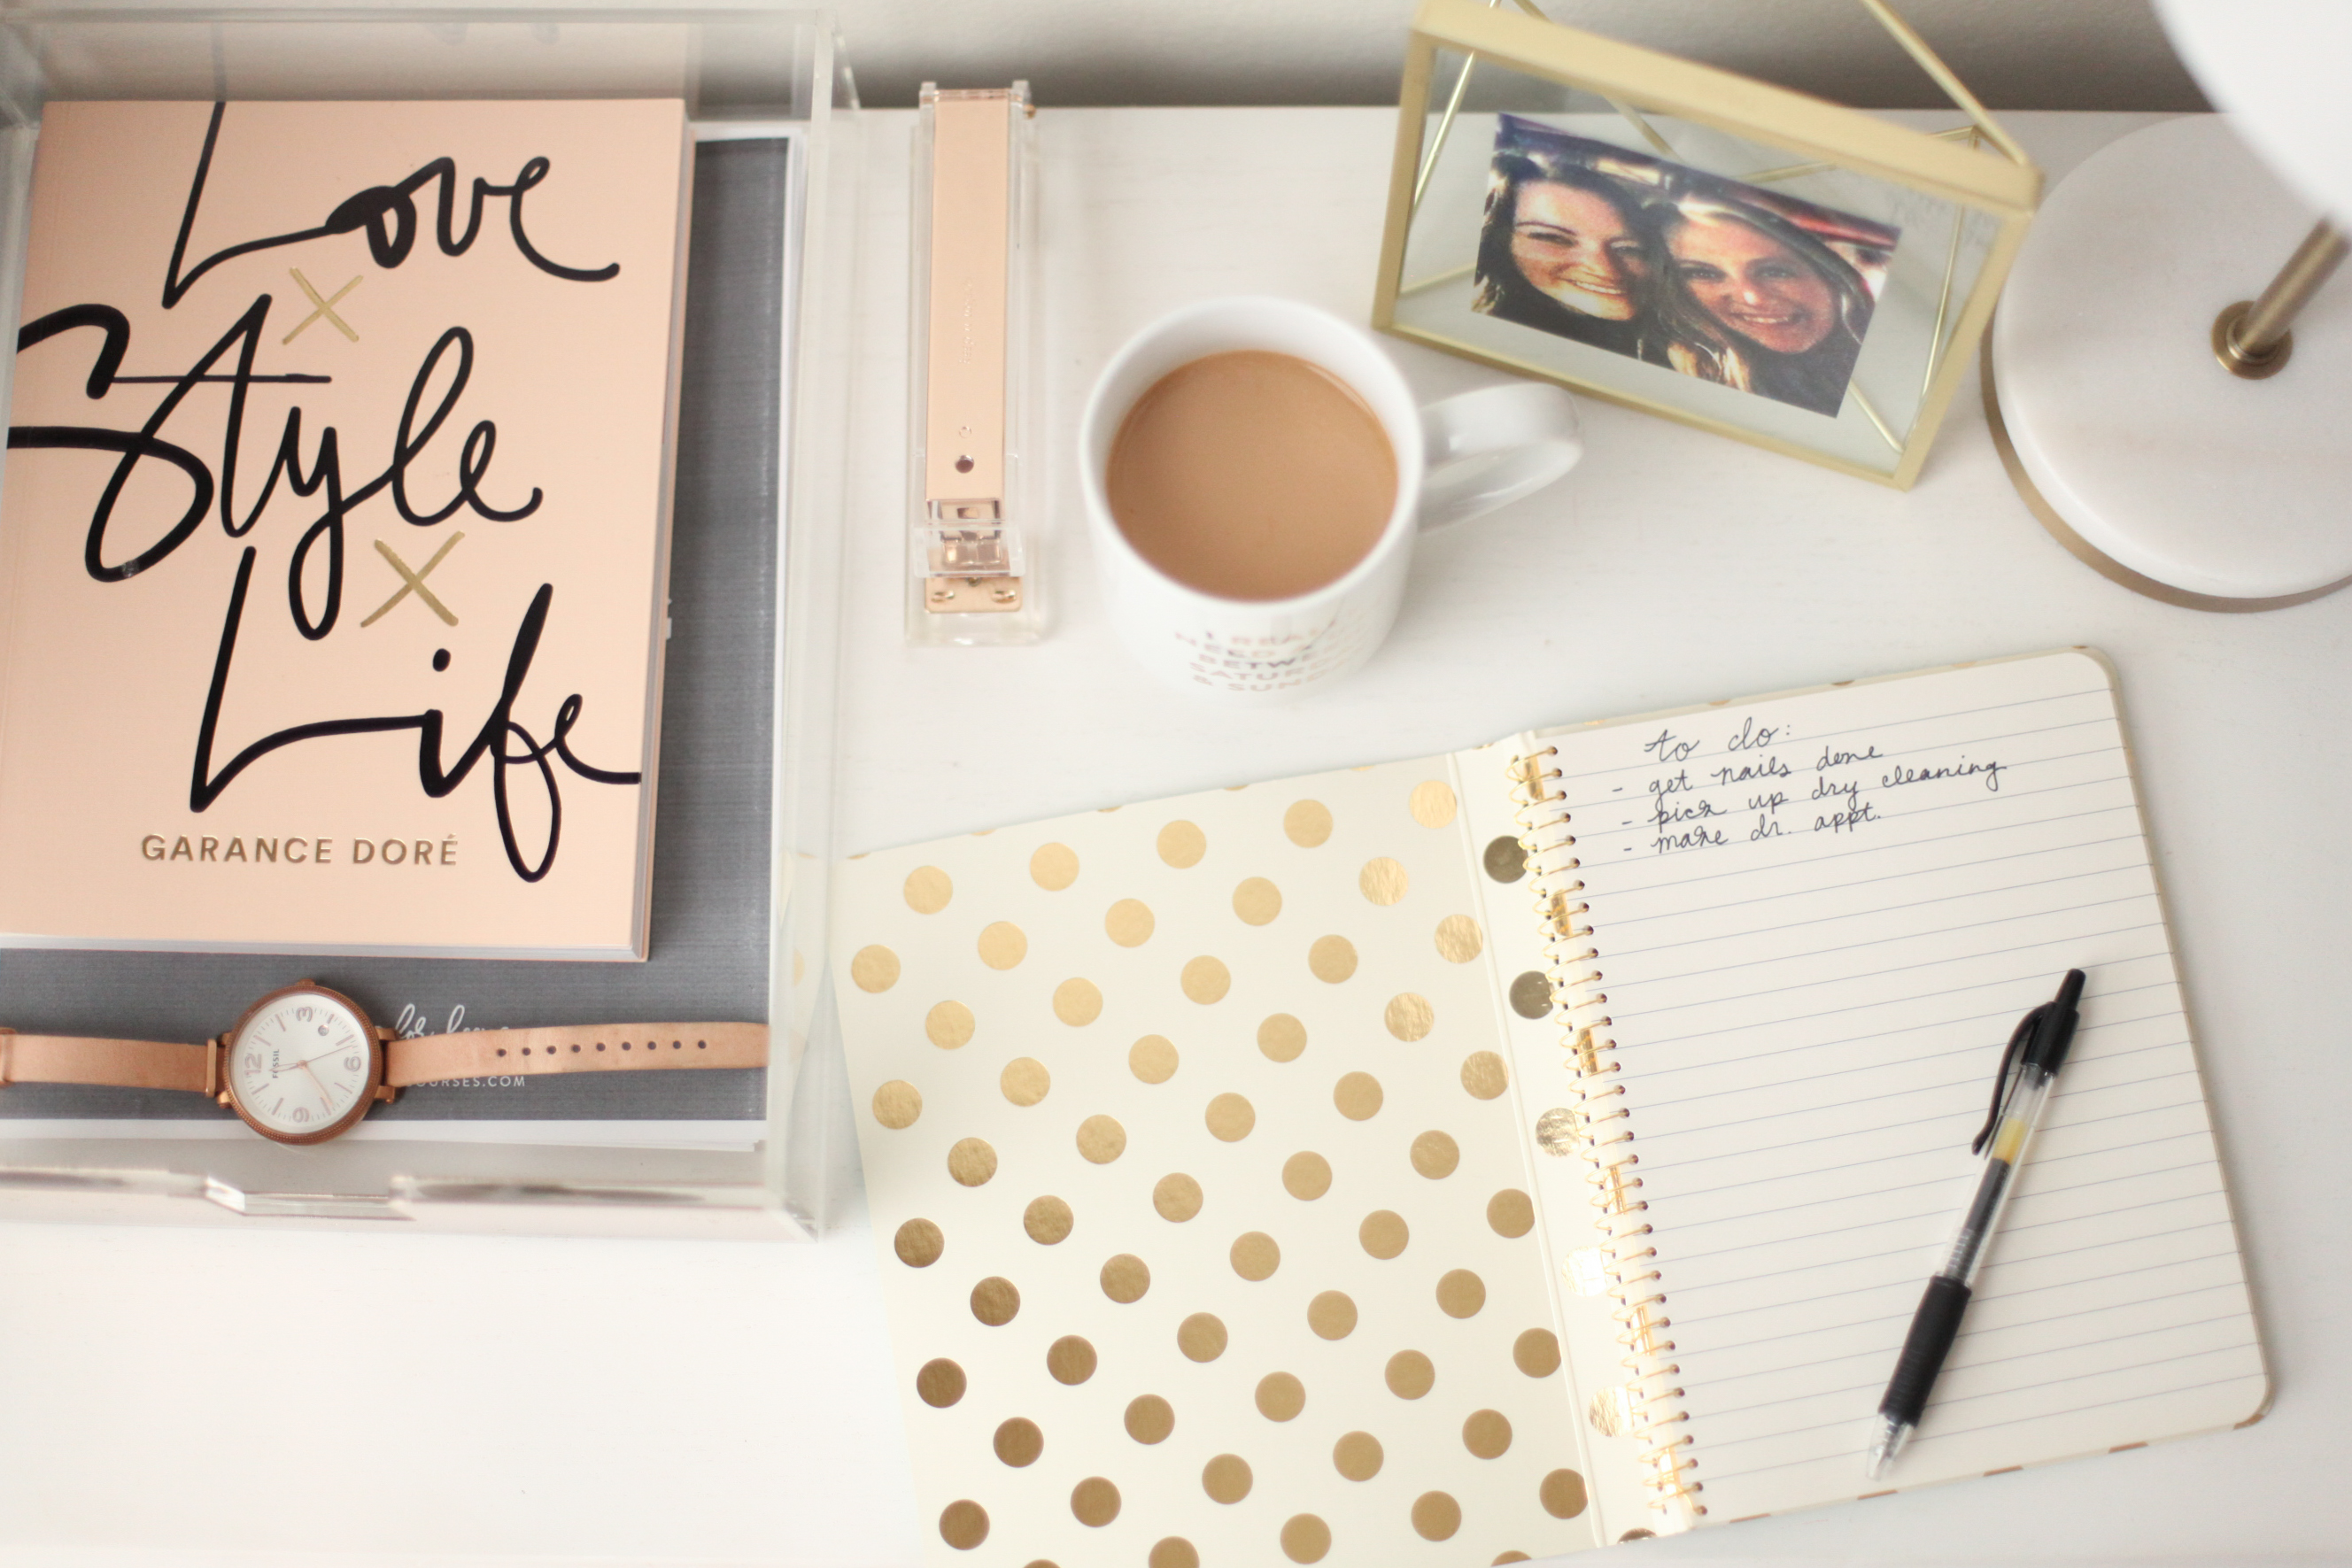 Make #adulting look even prettier: style your desk with these easy tips!